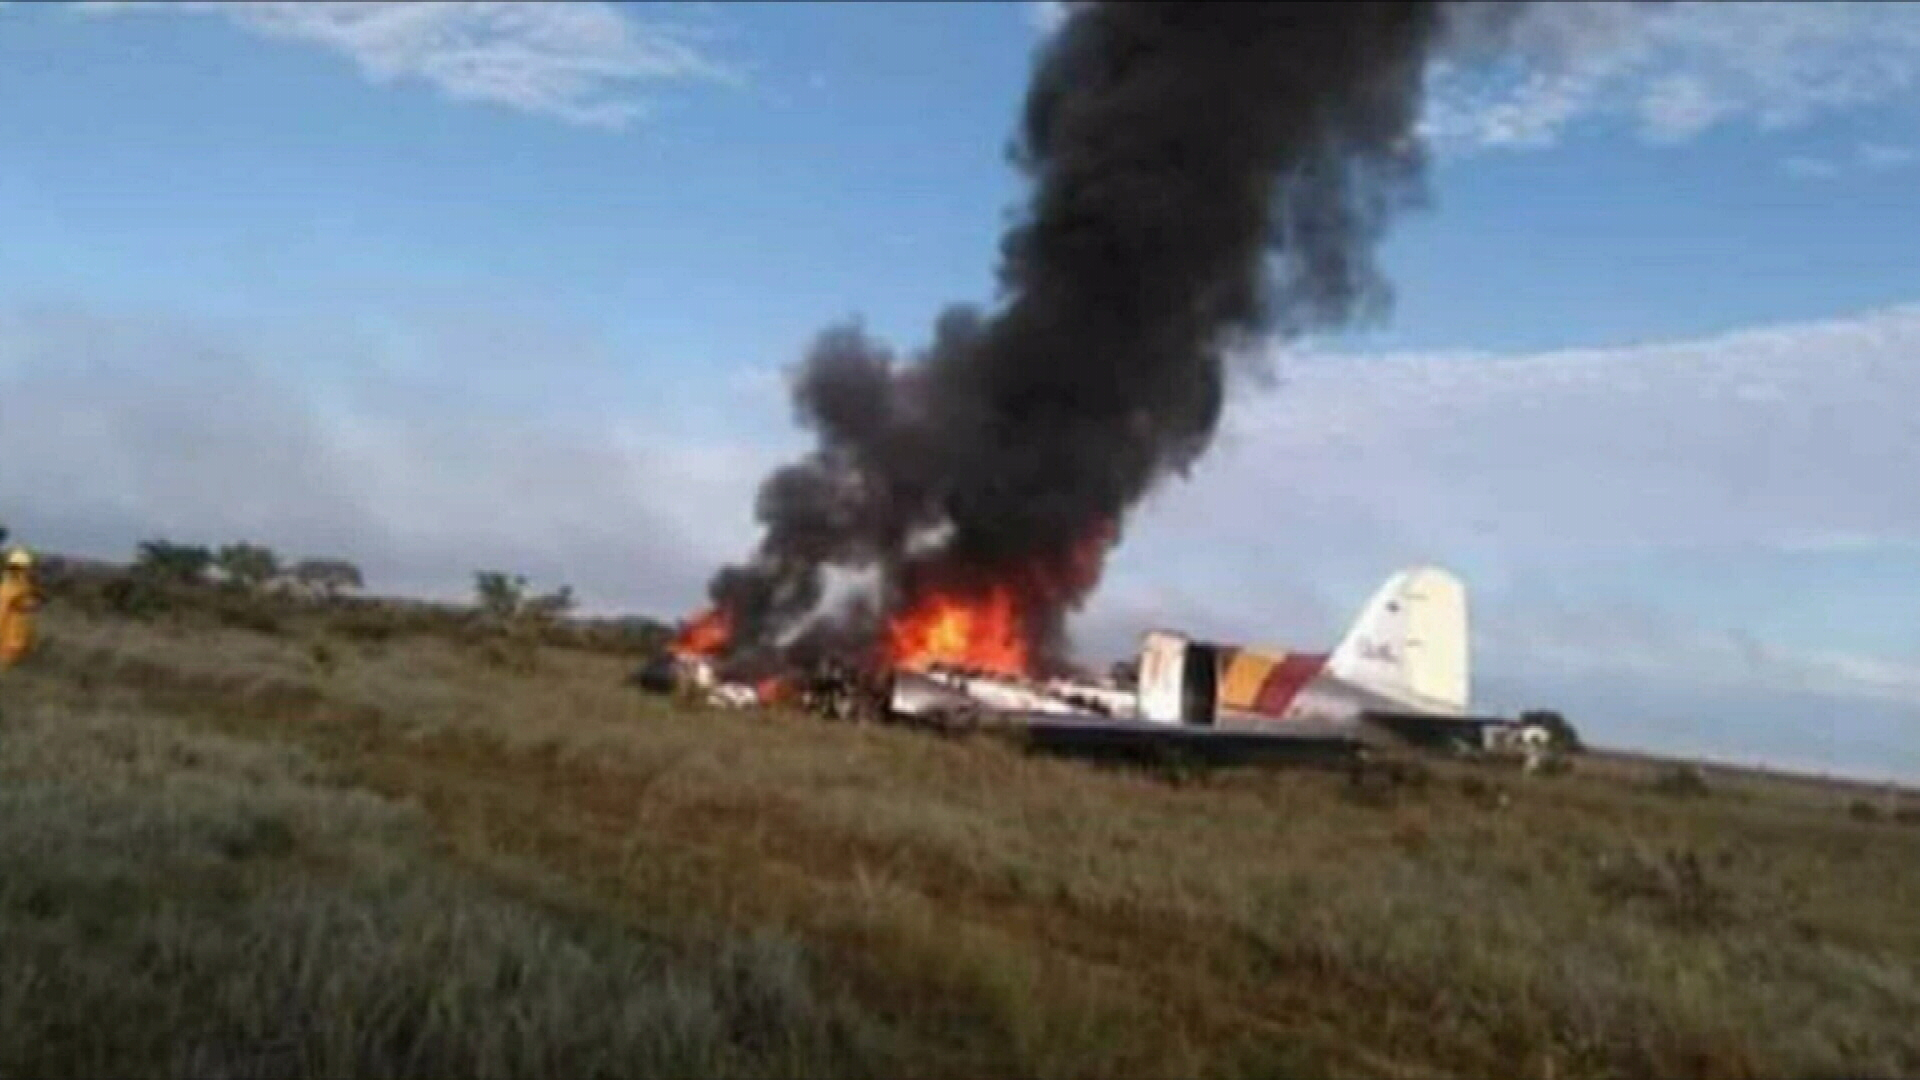 Twelve dead in Colombia plane crash, Americas News & Top Stories